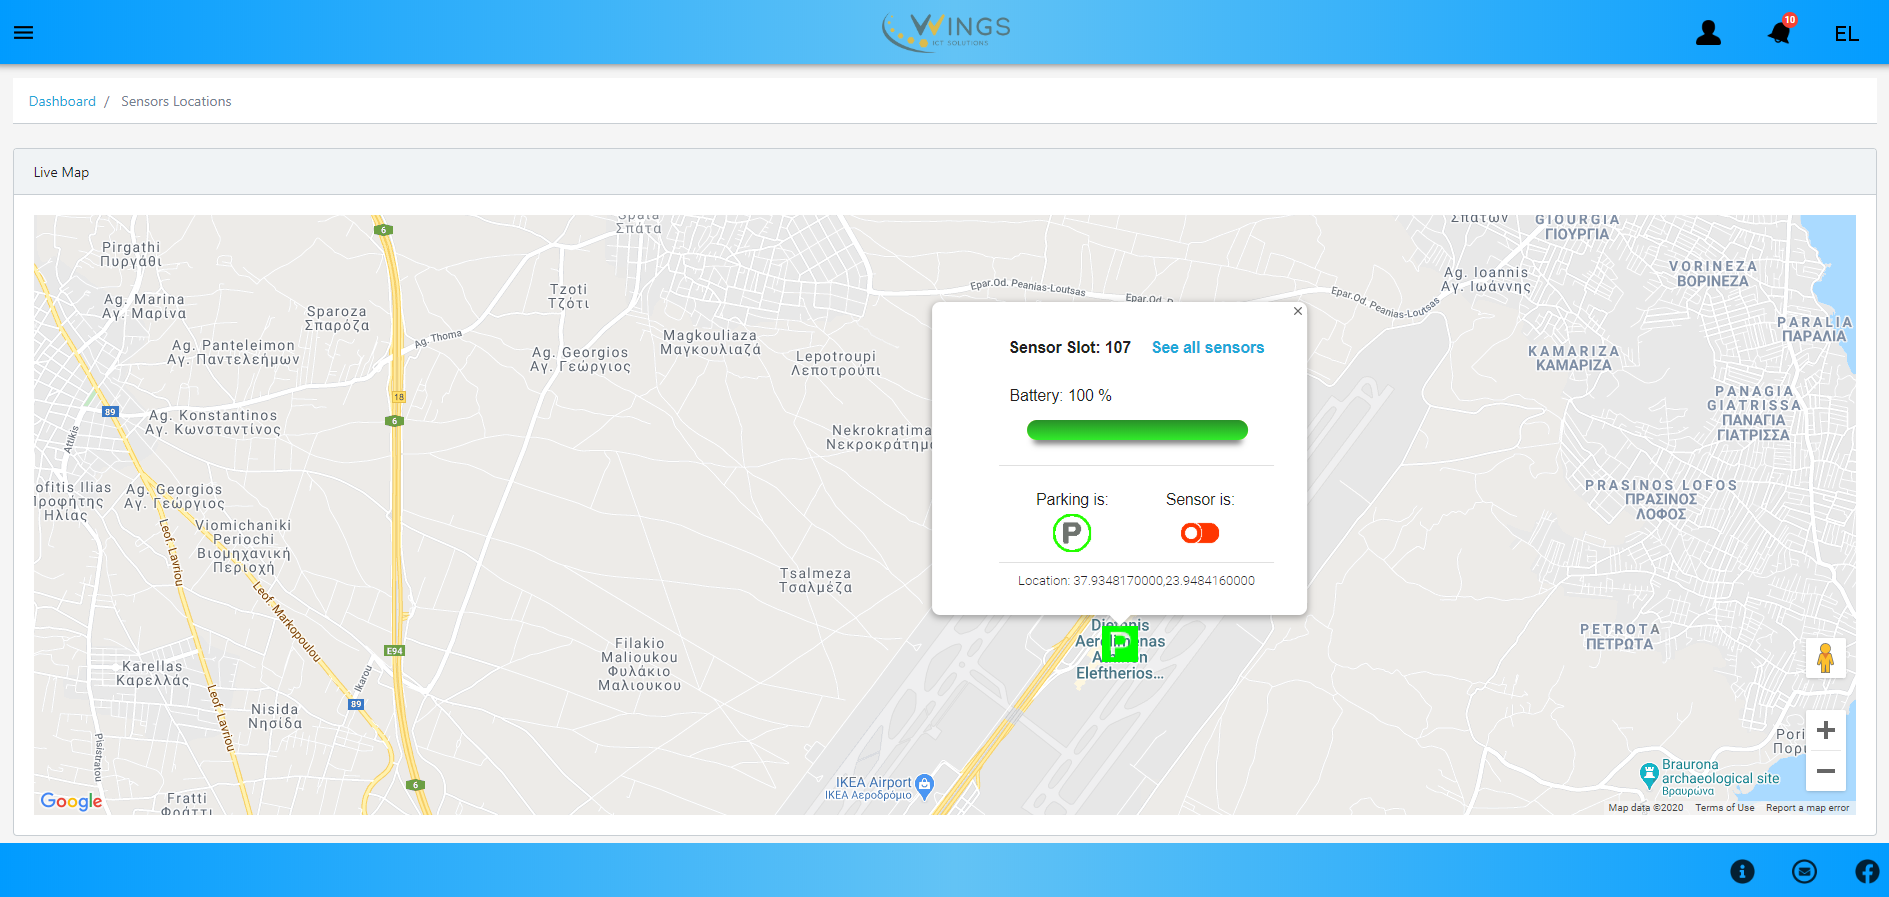 WINGSPARK – a new, simple and secure platform for easy parking (in AIA) powered by 5G / advanced wireless systems